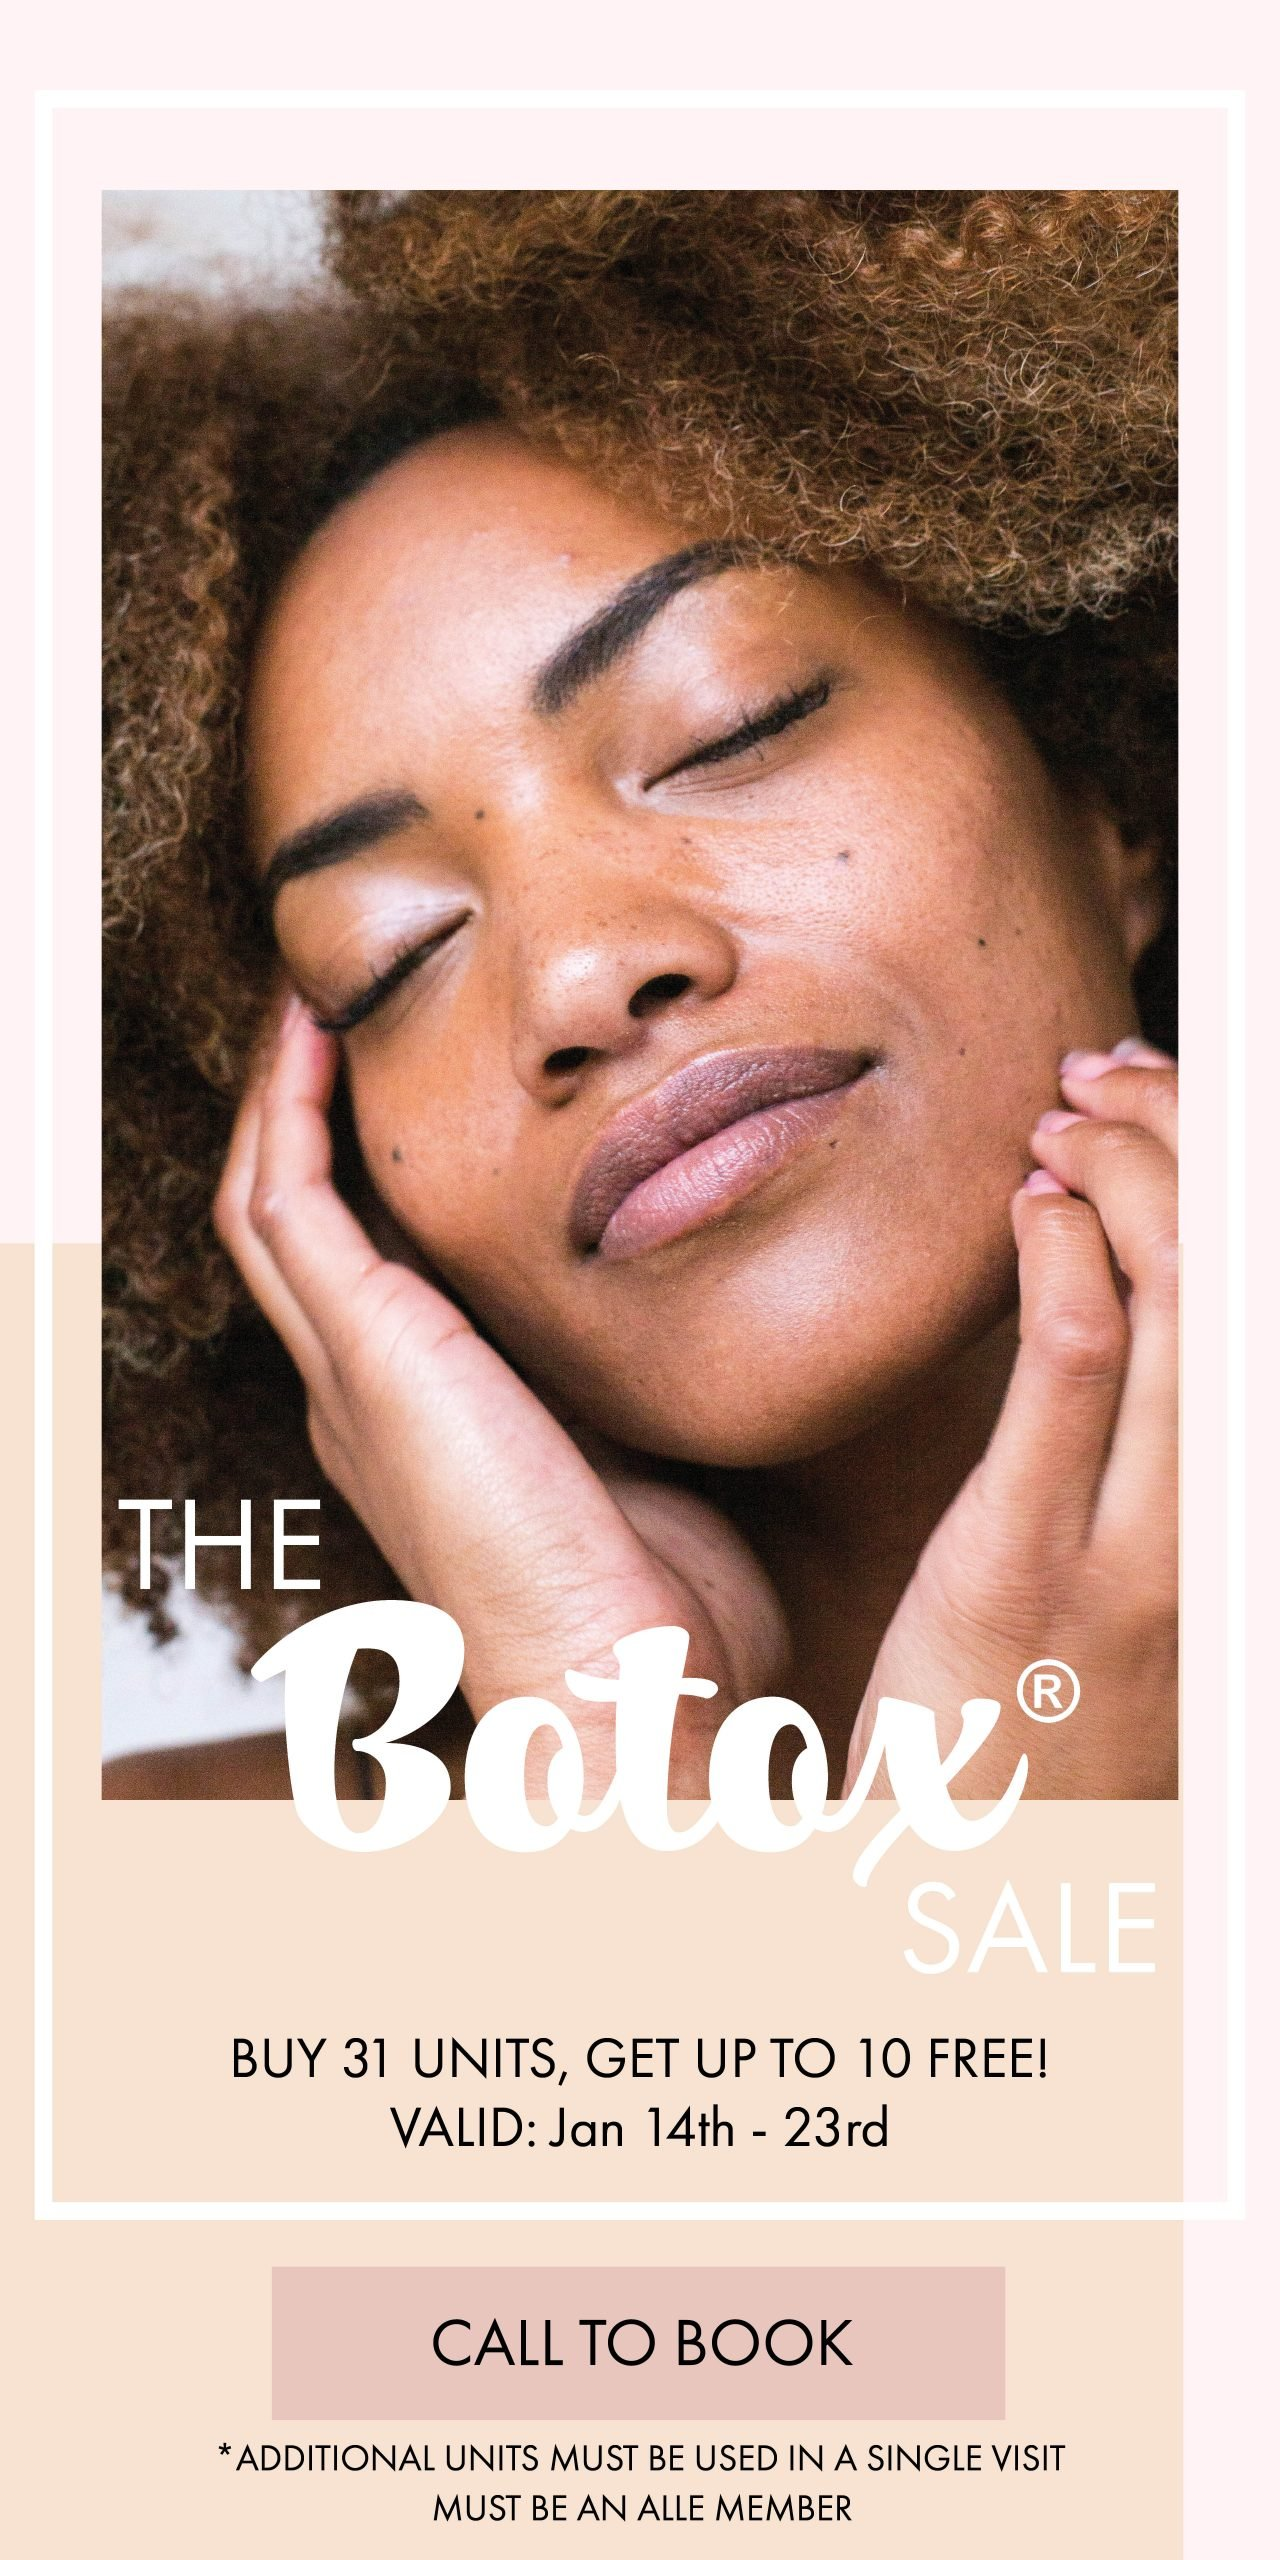 January 14-23 only, buy 31 units of botox and get up to 10 units free! To qualify, you must be an Alle member. Additional units must be used in a single visit. Offer cannot be combined.